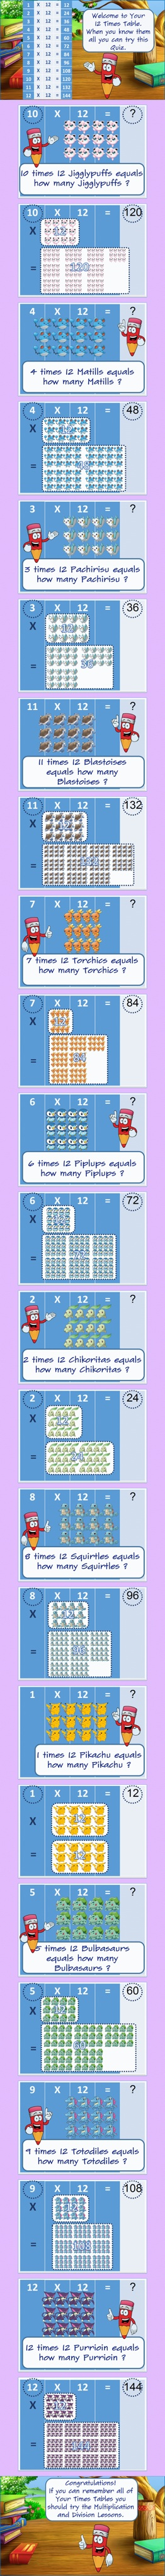 Phenomenal Learn Your 12 Times Table The Fun And Easy Way For 5 Year Download Free Architecture Designs Terchretrmadebymaigaardcom